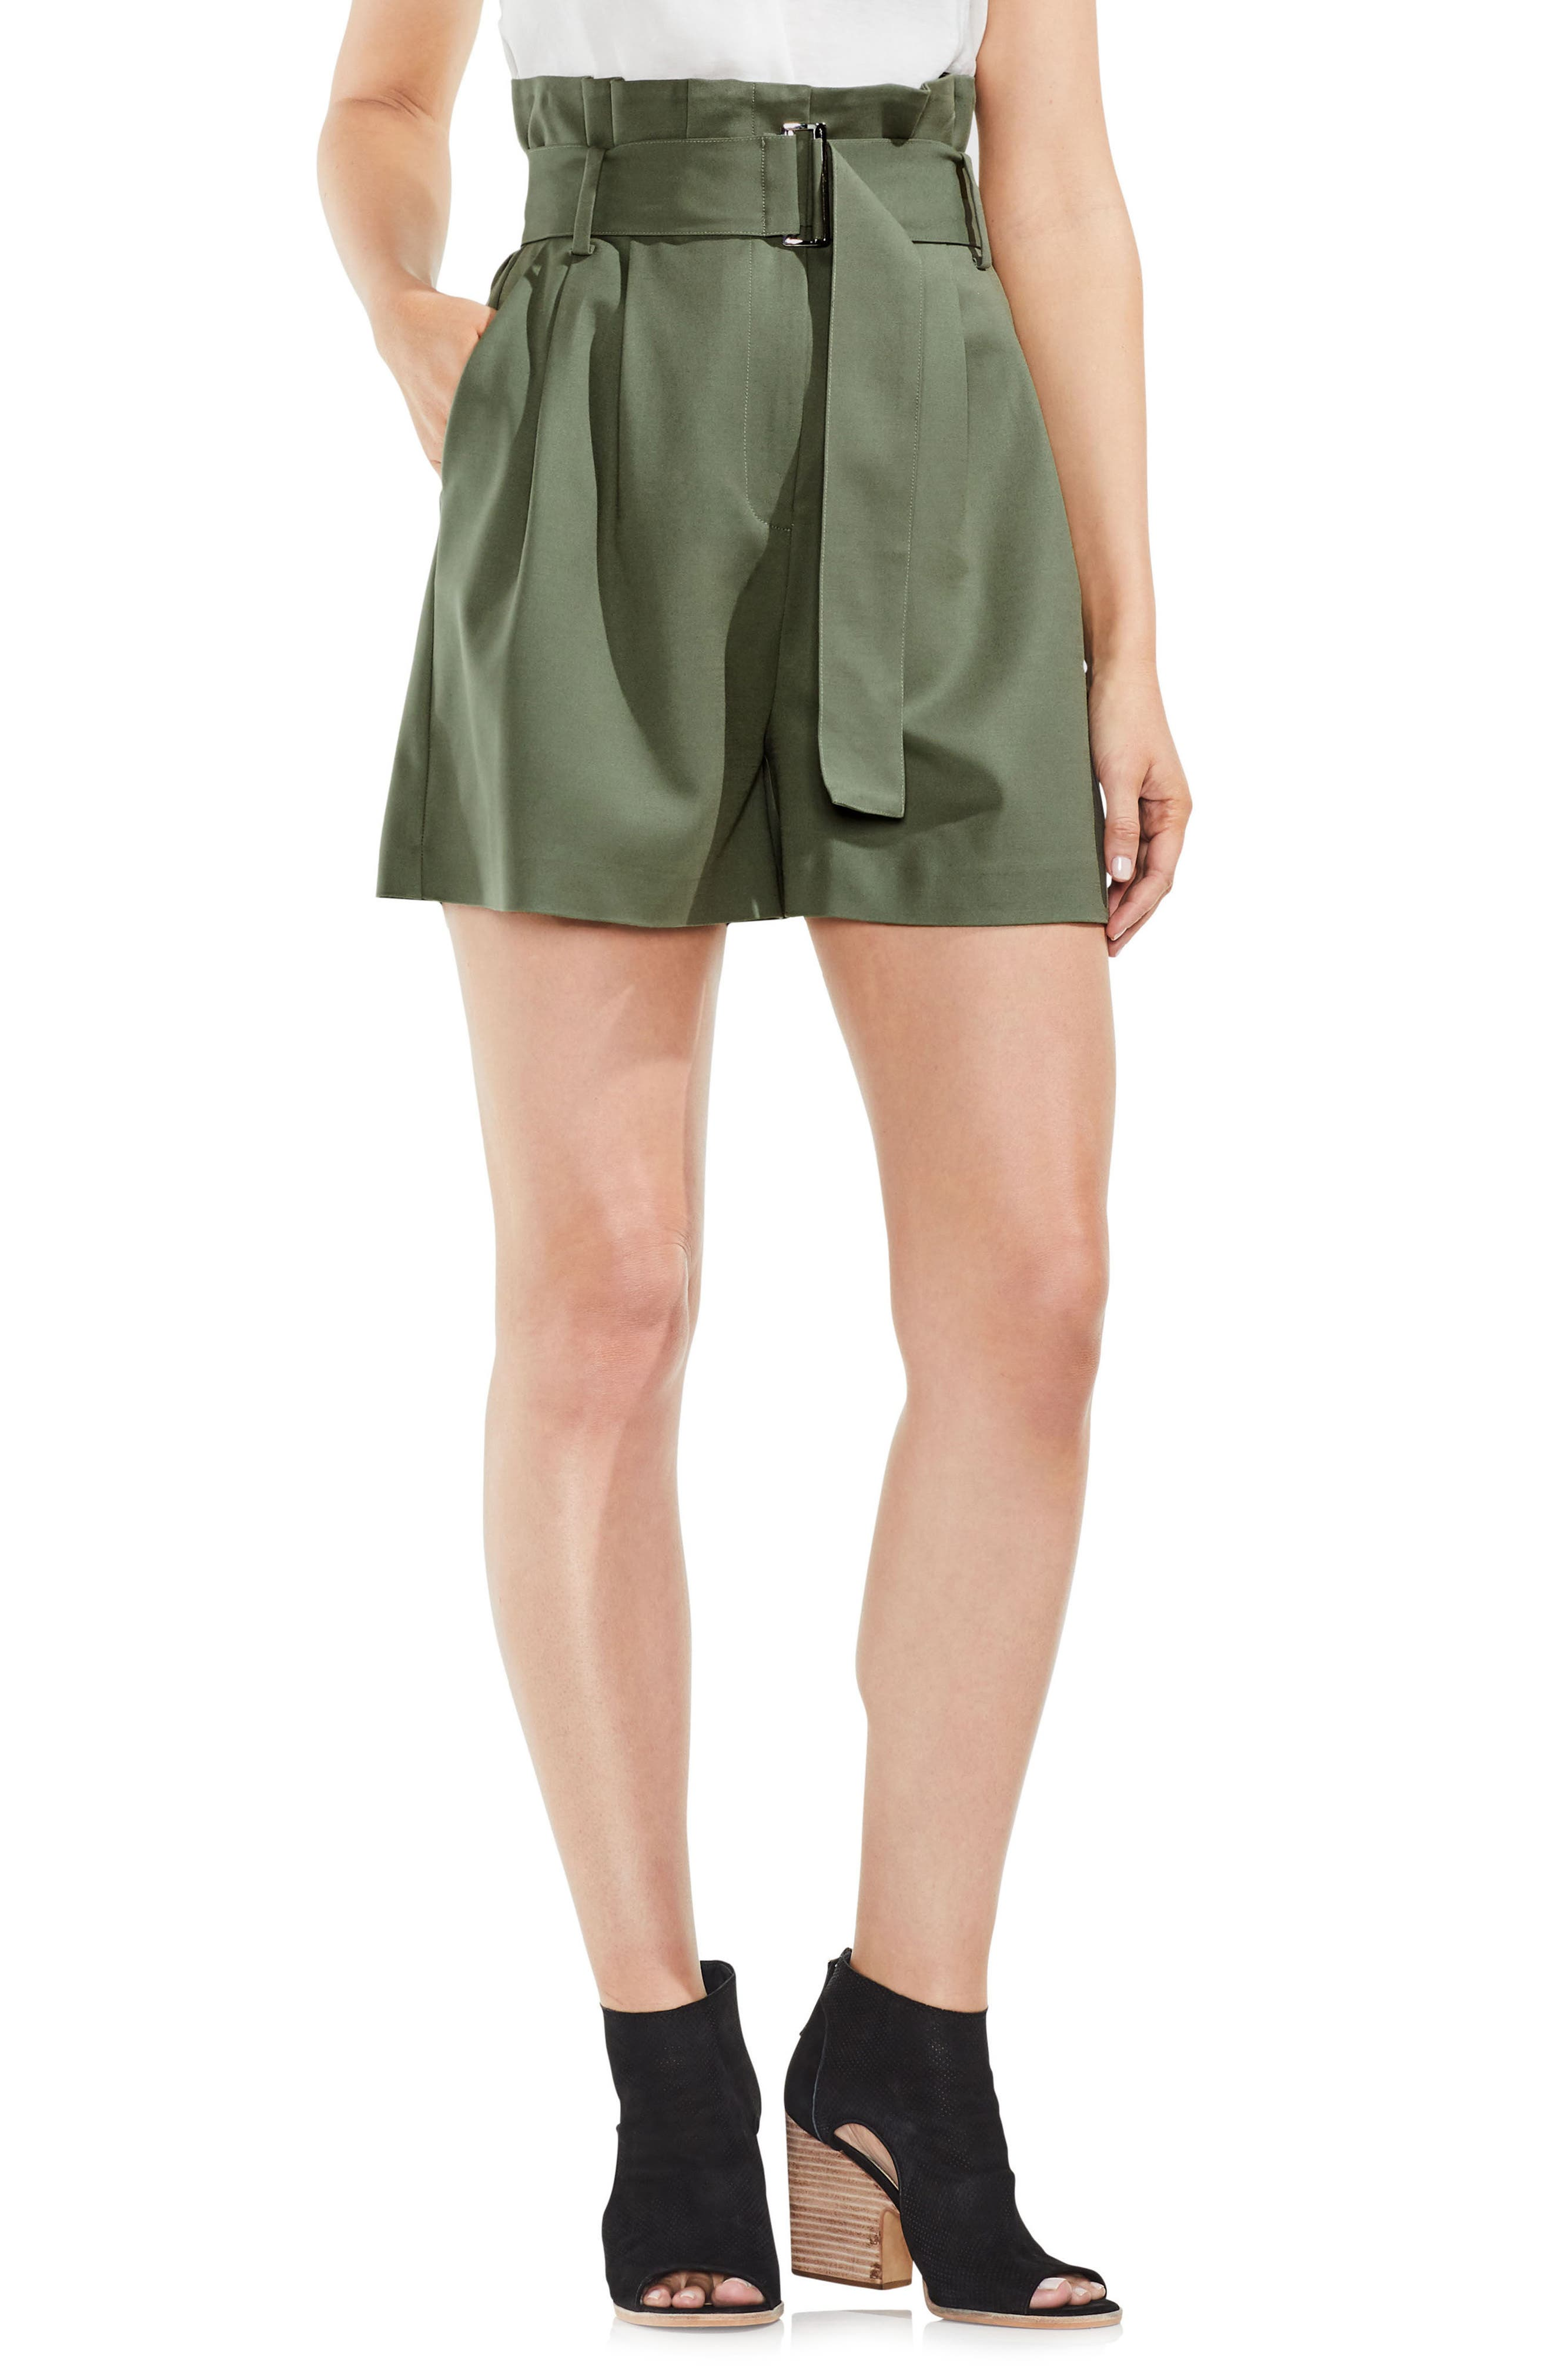 Alternate Image 1 Selected - Vince Camuto Belted High Waist Shorts